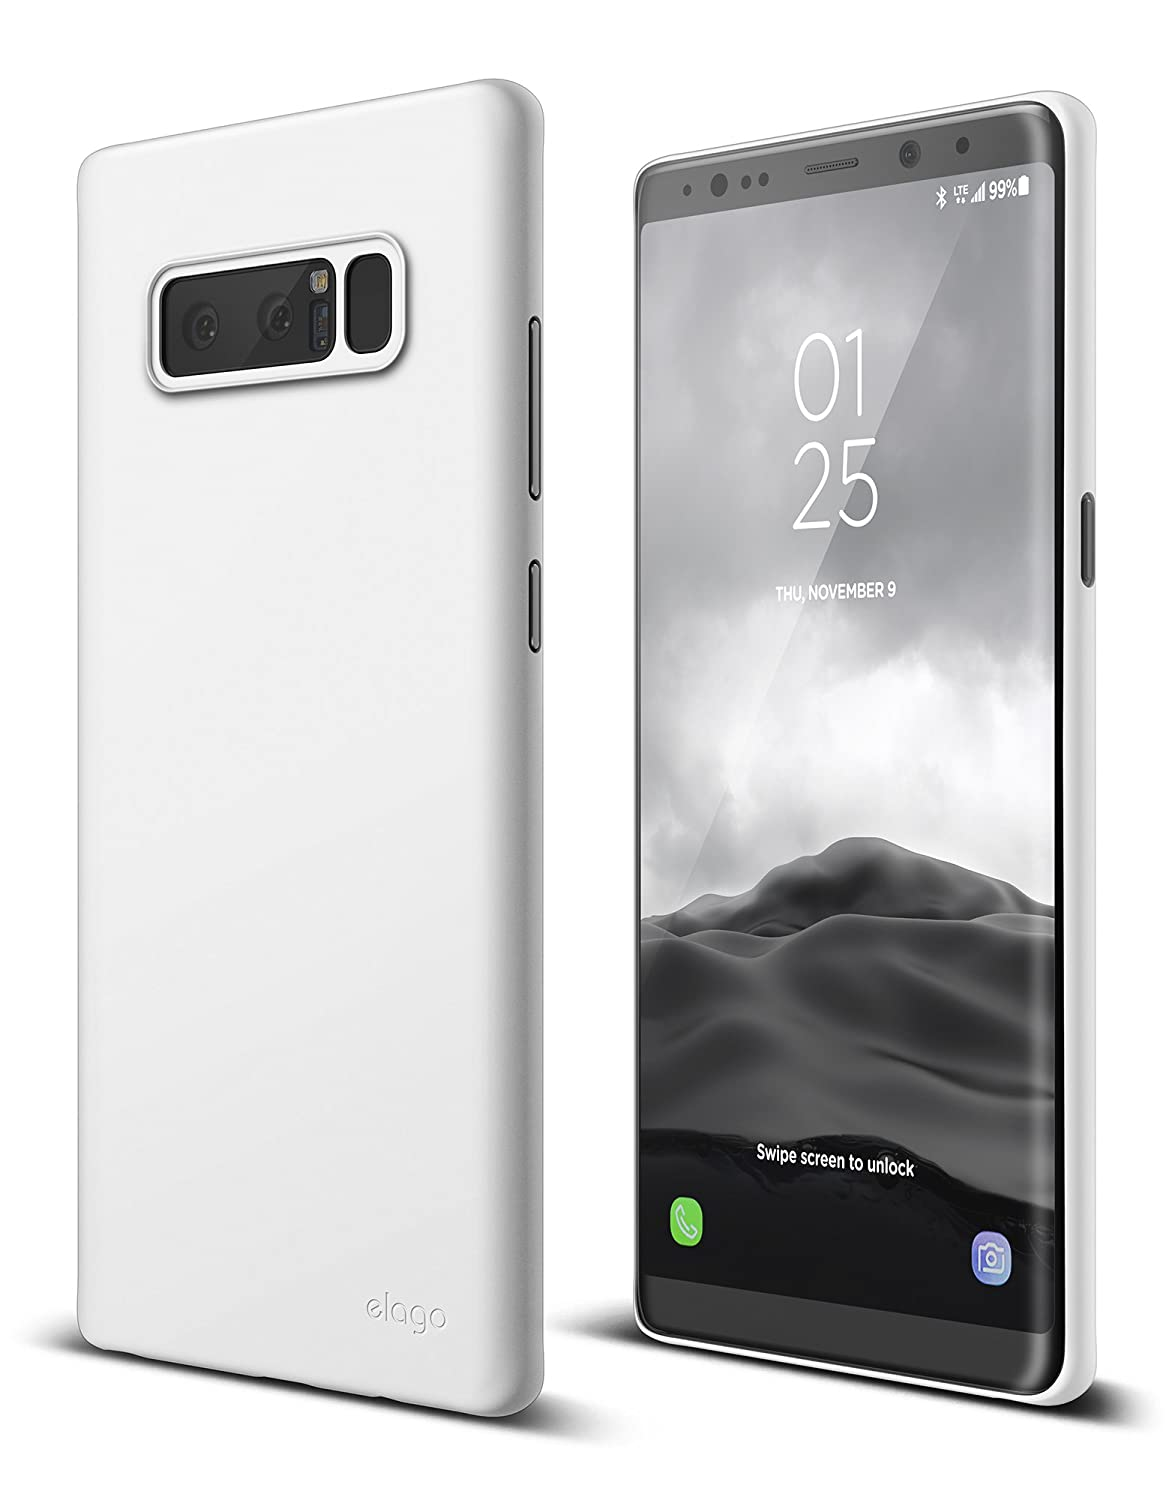 cheaper 7c9d7 75754 elago Galaxy Note 8 Case [Origin][White] - [Device Fitting  Tested][Minimalistic][Scratch Protection Only][True Fit] - for Samsung  Galaxy Note 8